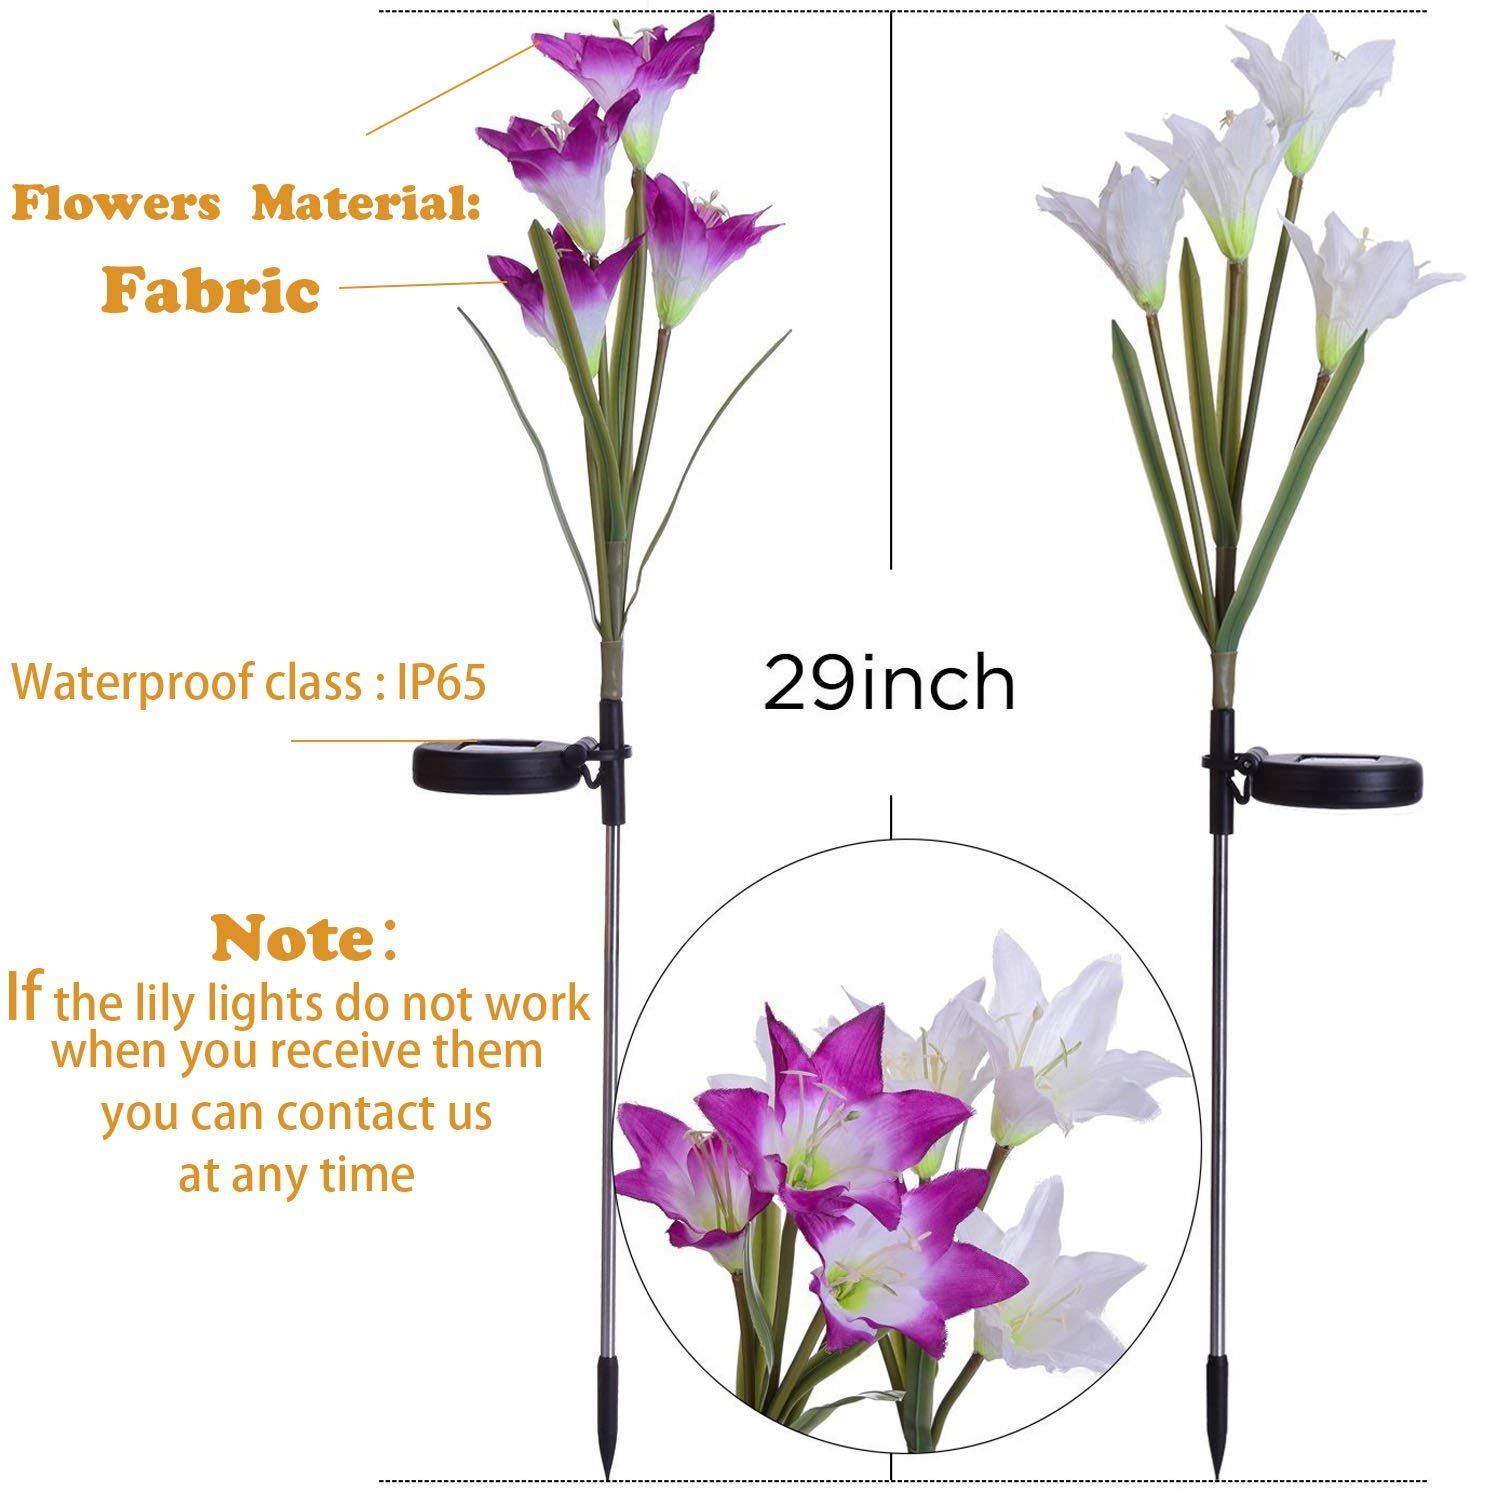 2 Pack Outdoor Solar Lights, AOIEORD Multi-Colors Changing Solar LED Flower Stake Lights with 8 Lily Flowers, Perfect for Garden, Patio, Backyard Decorating Halloween & Christmas (Purple & White)